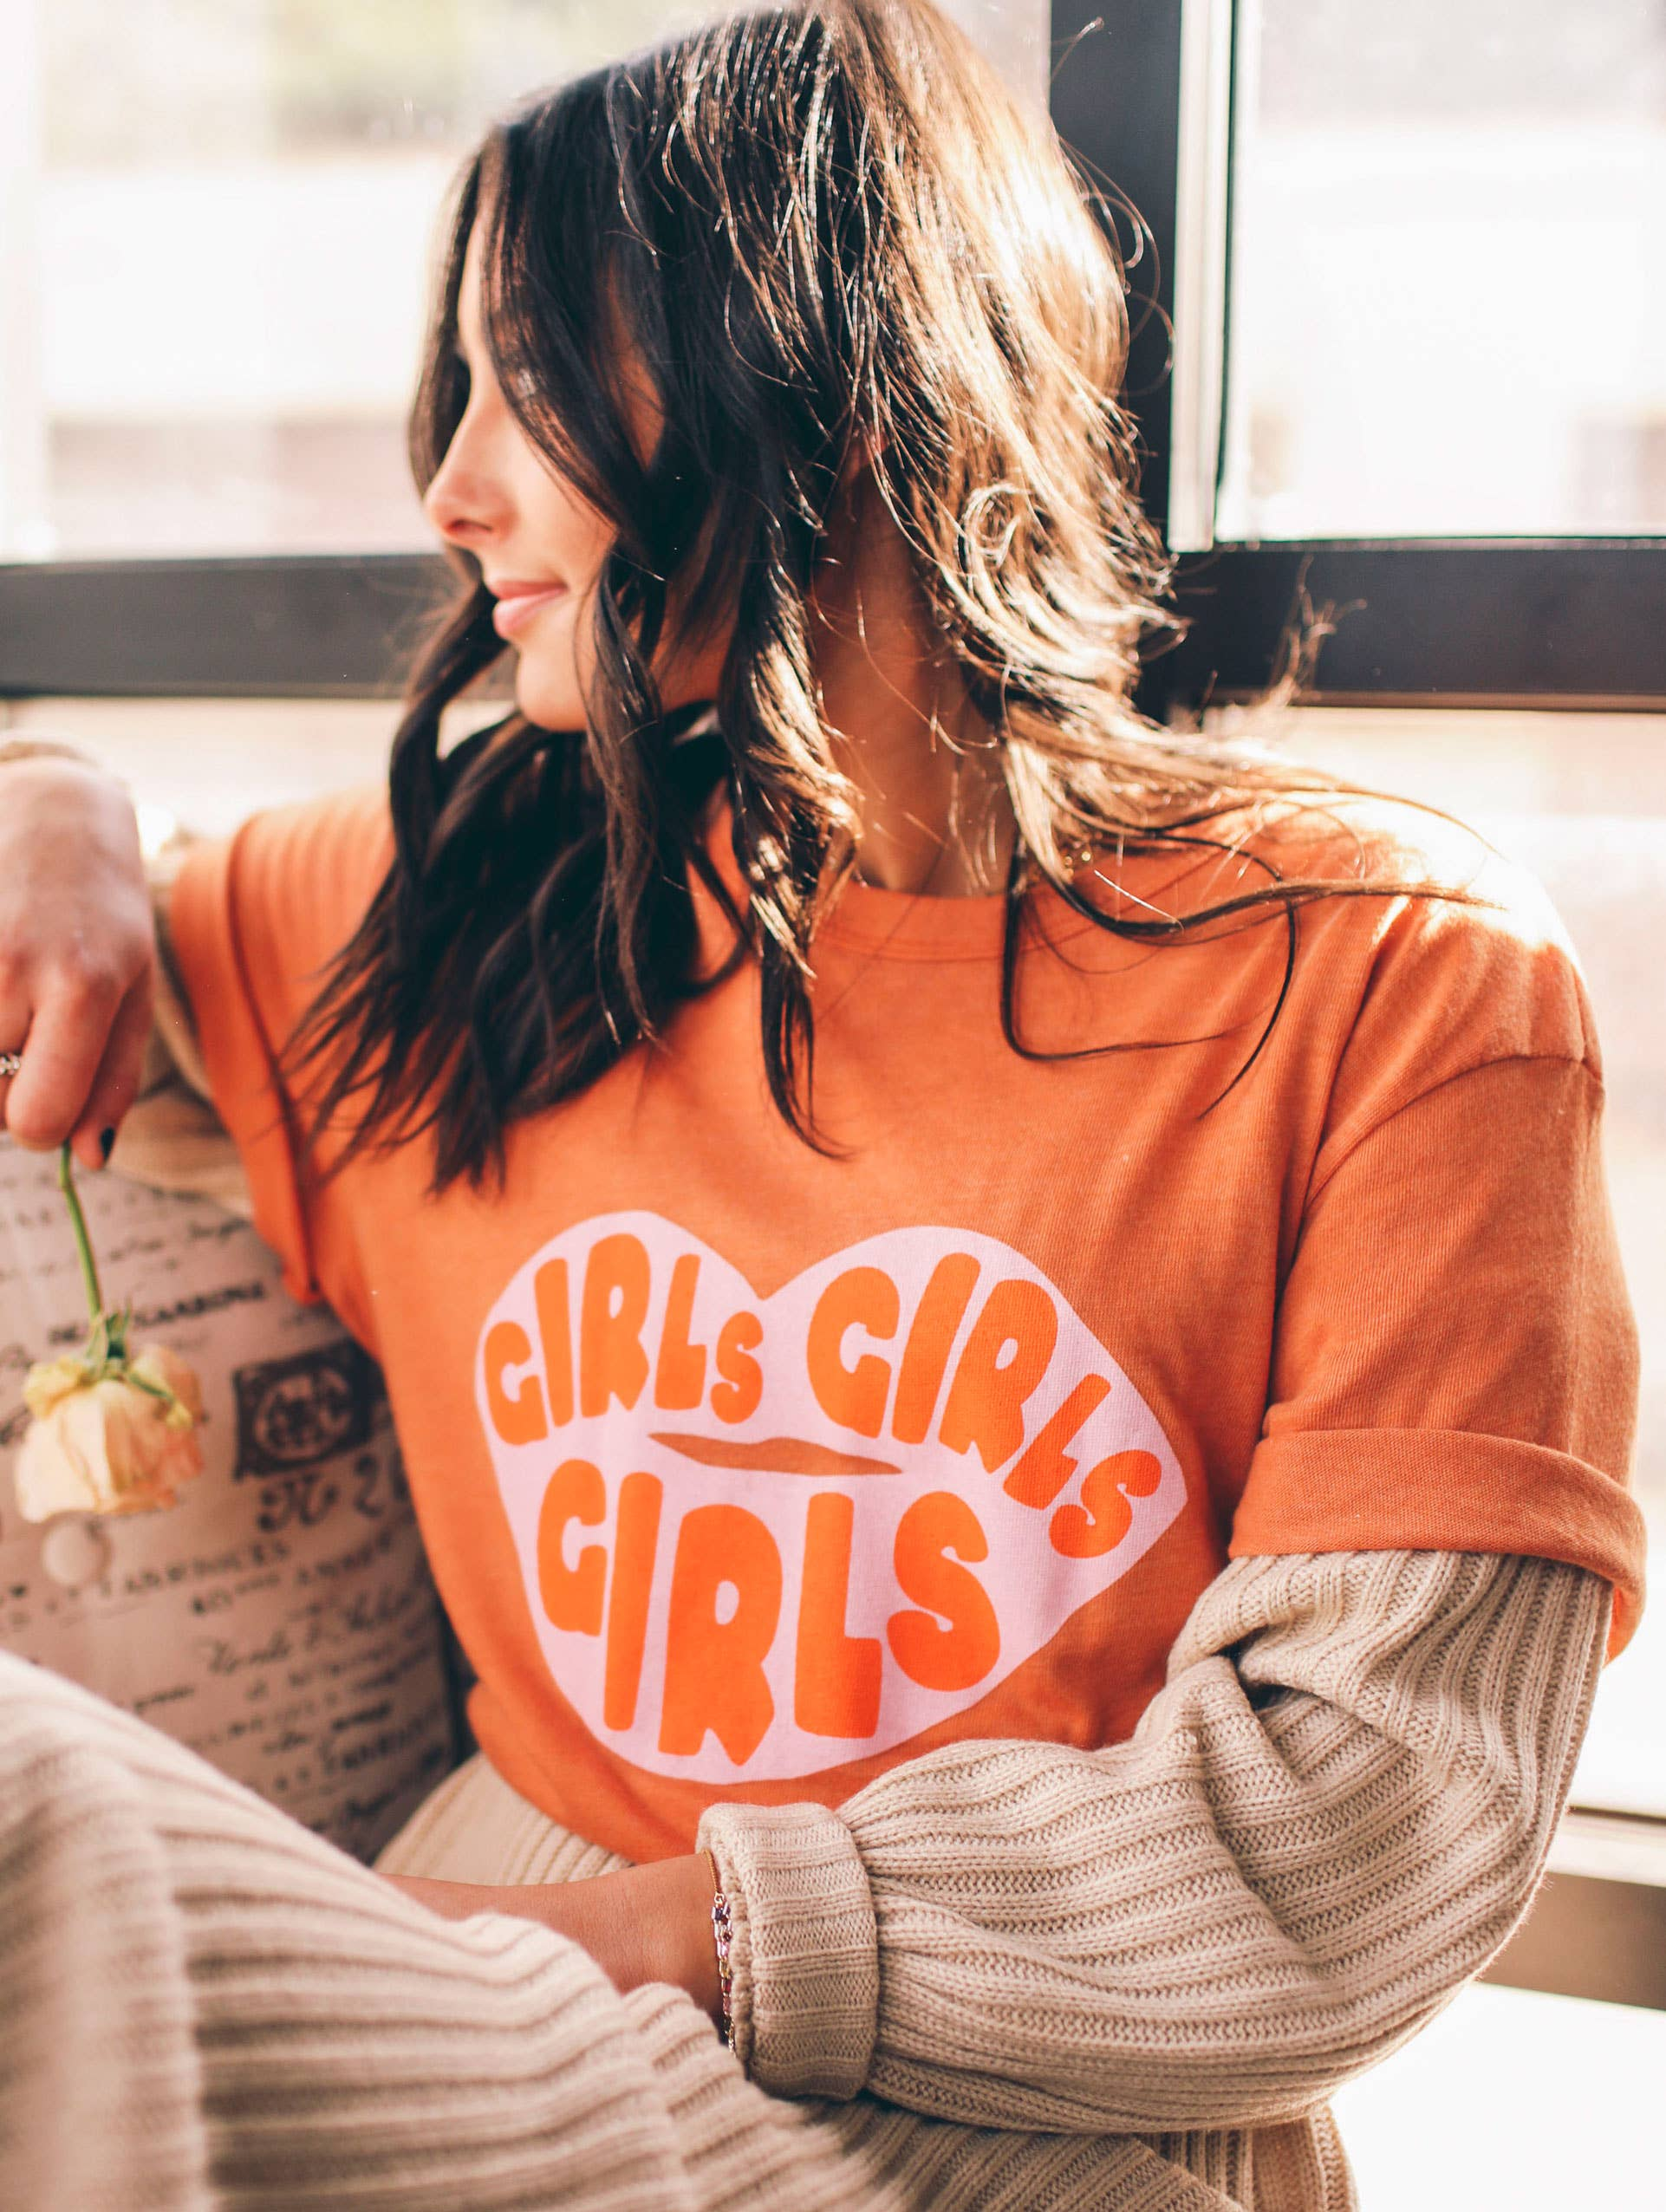 Girls Girls Girls Graphic Tee